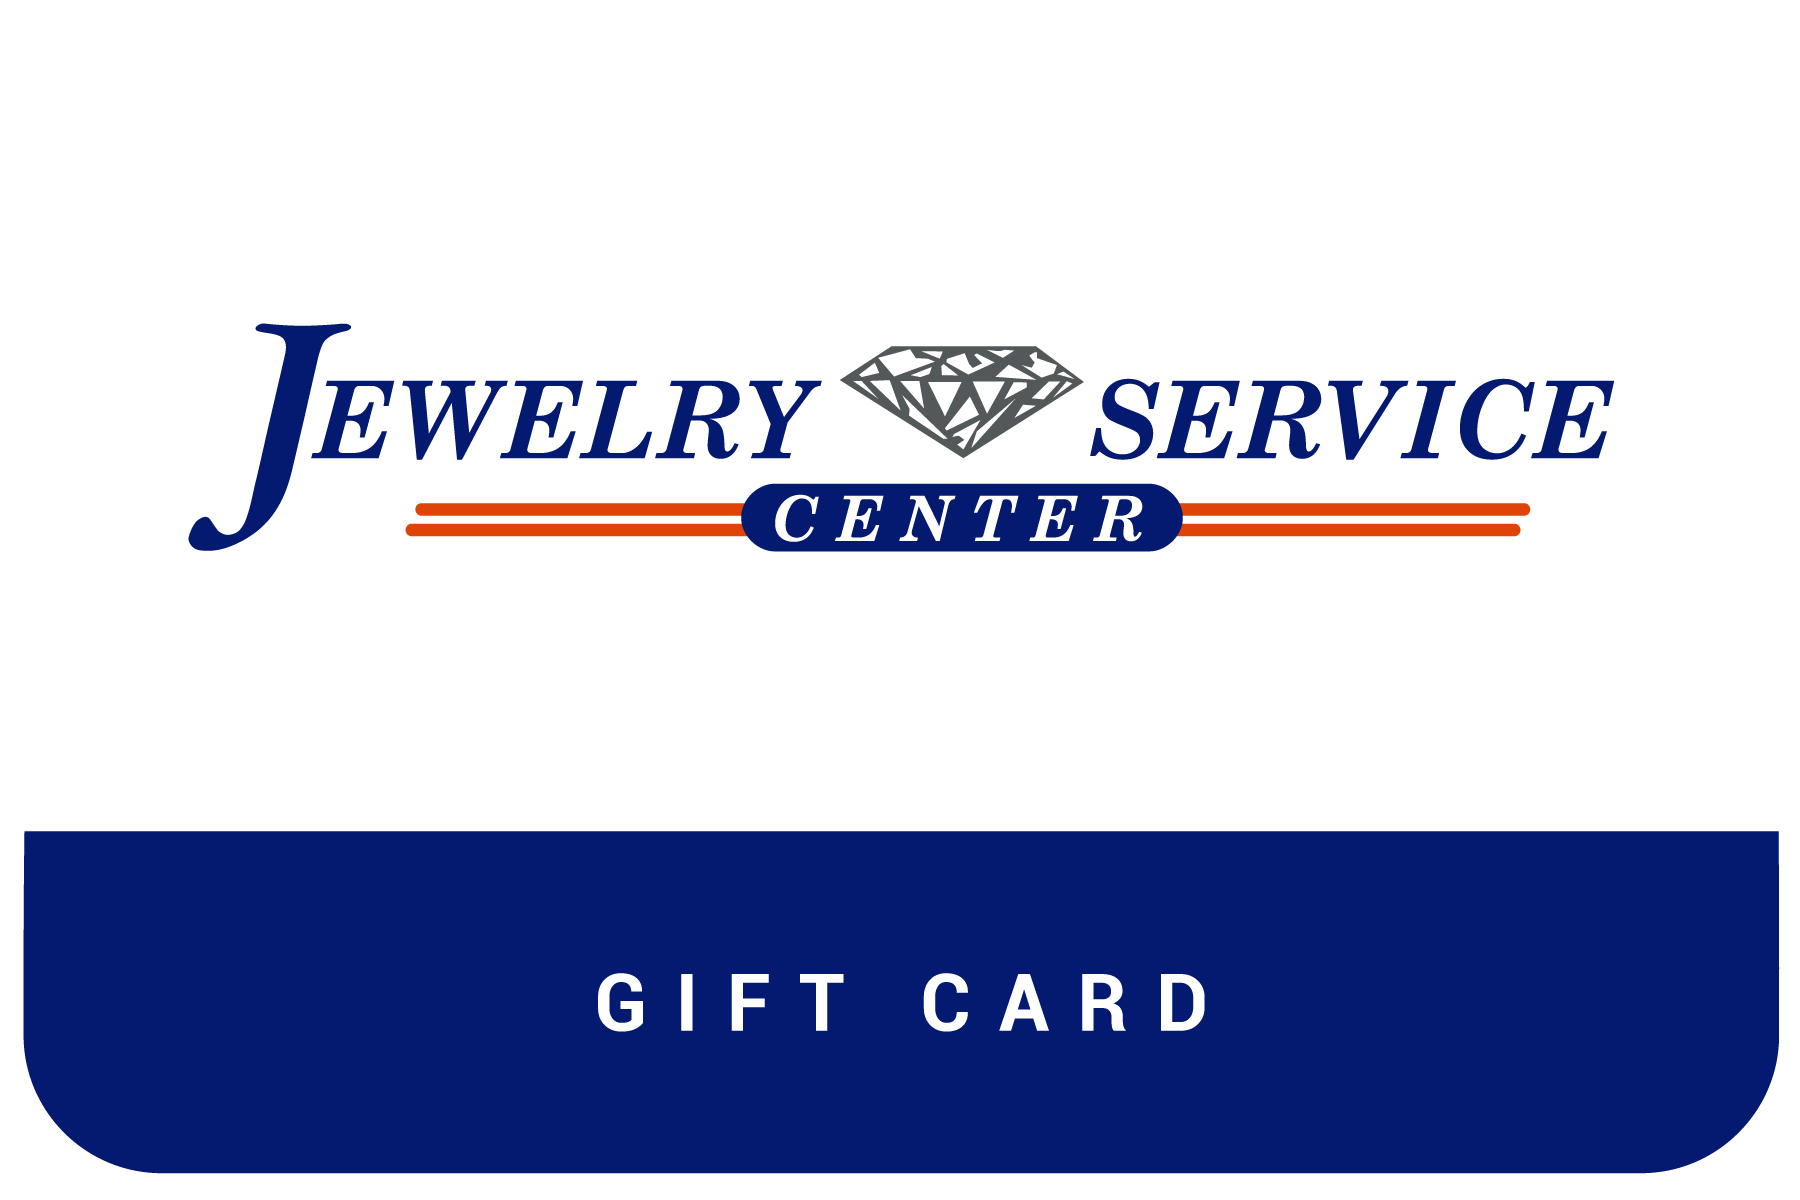 Jewelry Service Center $75 Gift Card